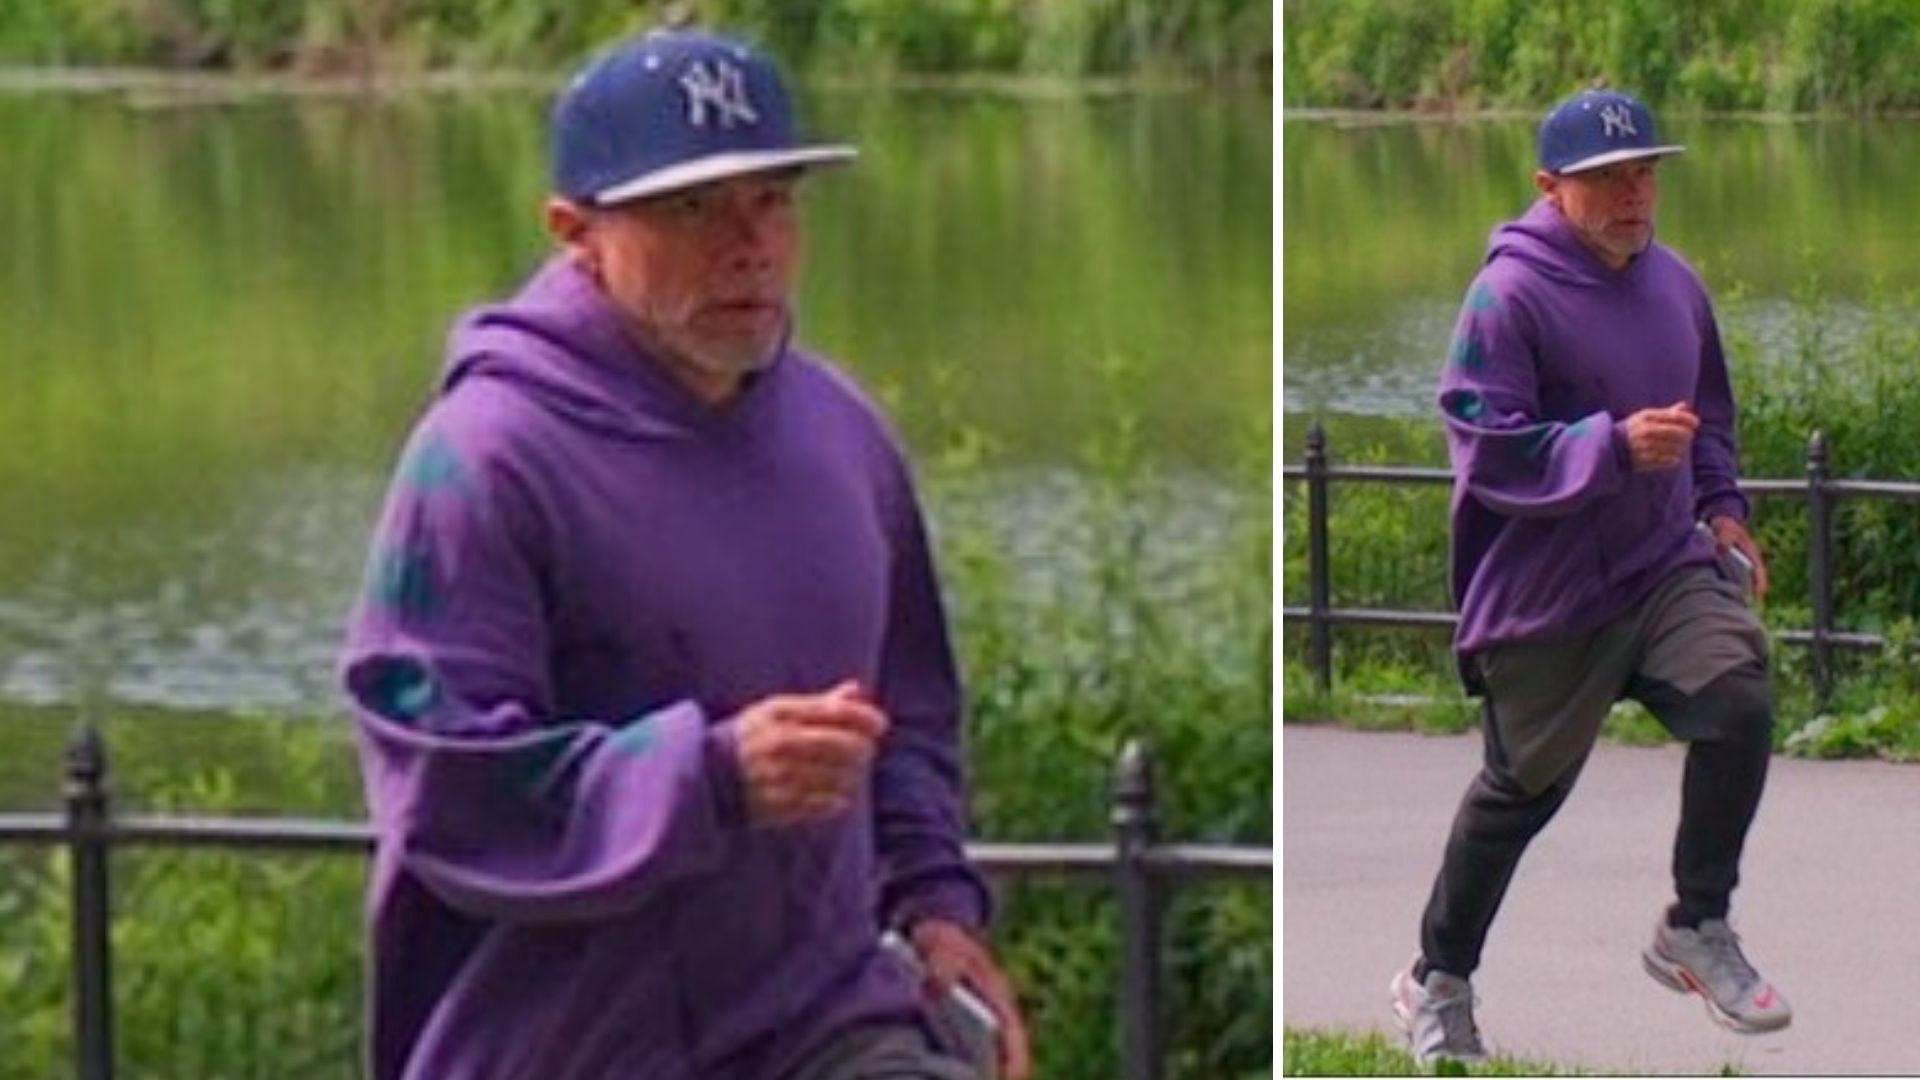 Man accused of punching, robbing woman in Central Park